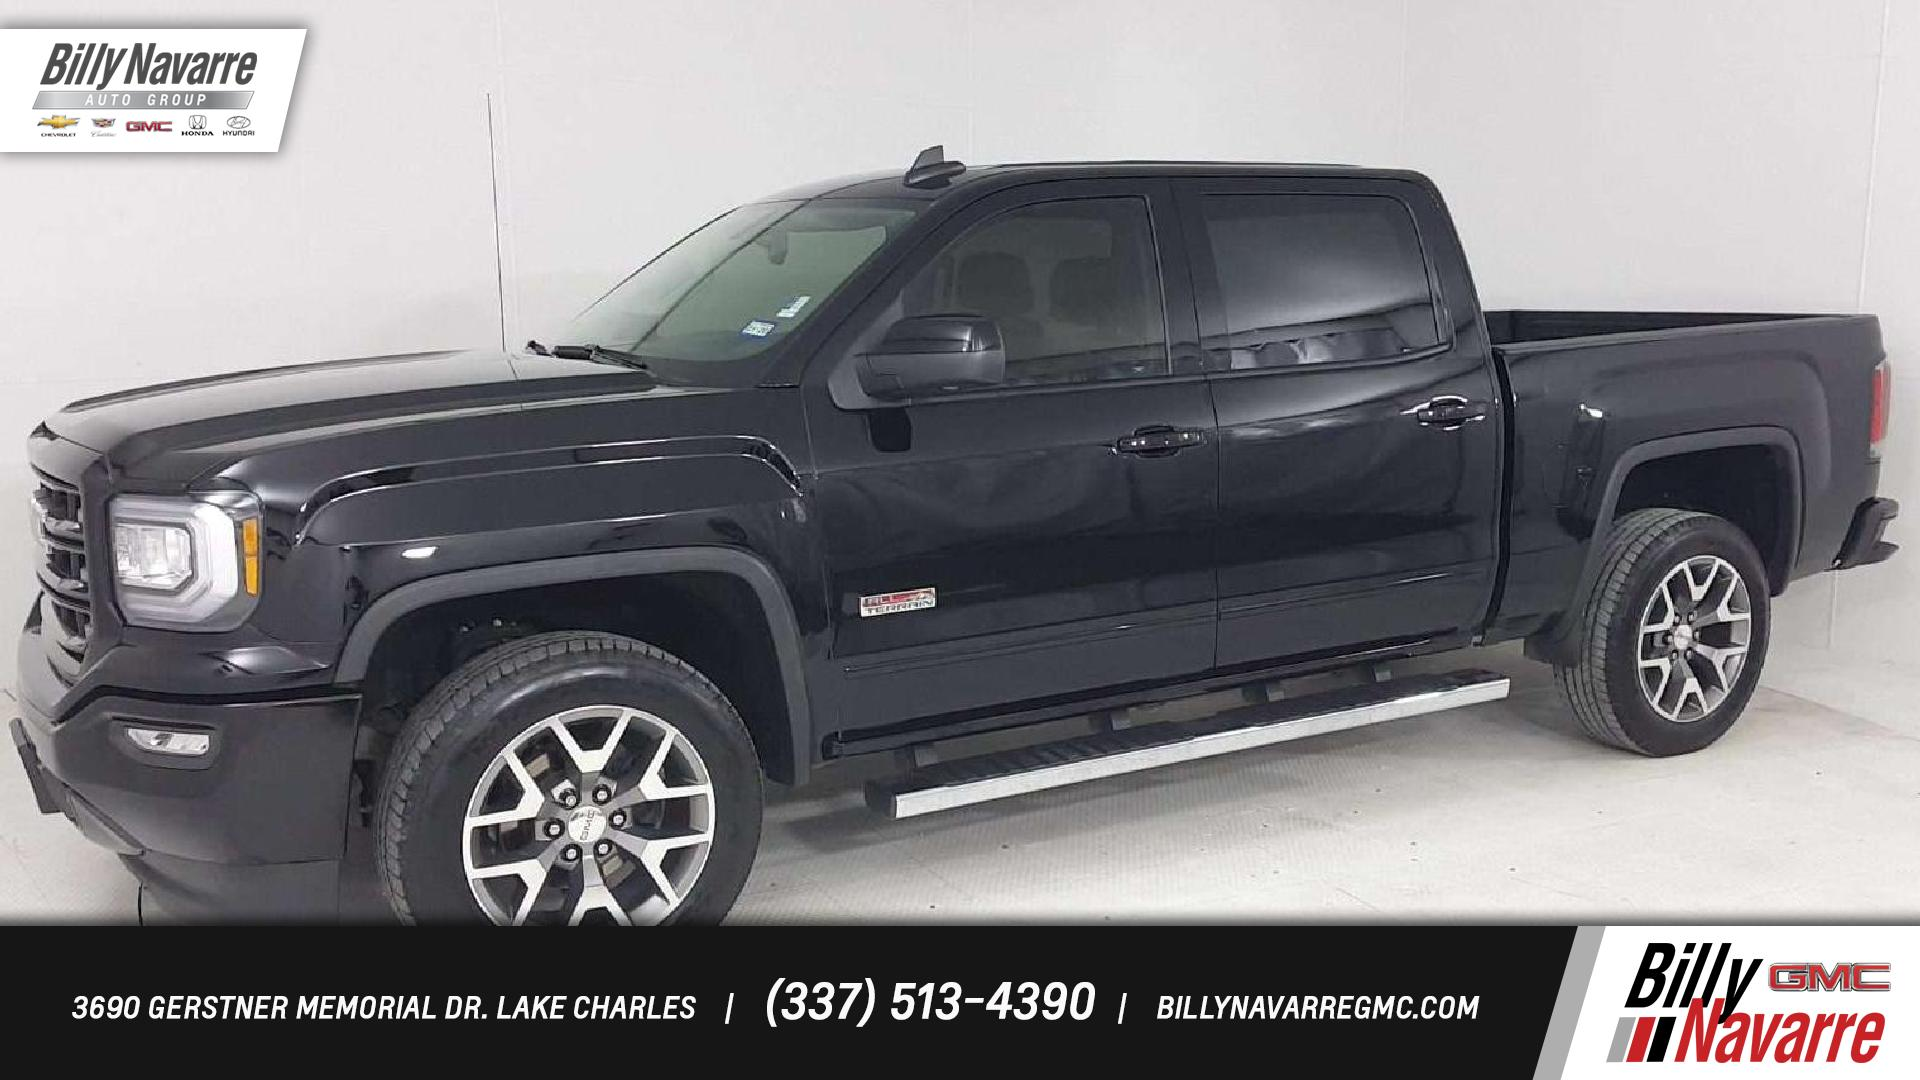 GMC Dealer Serving Lake Charles - Billy Navarre GMC